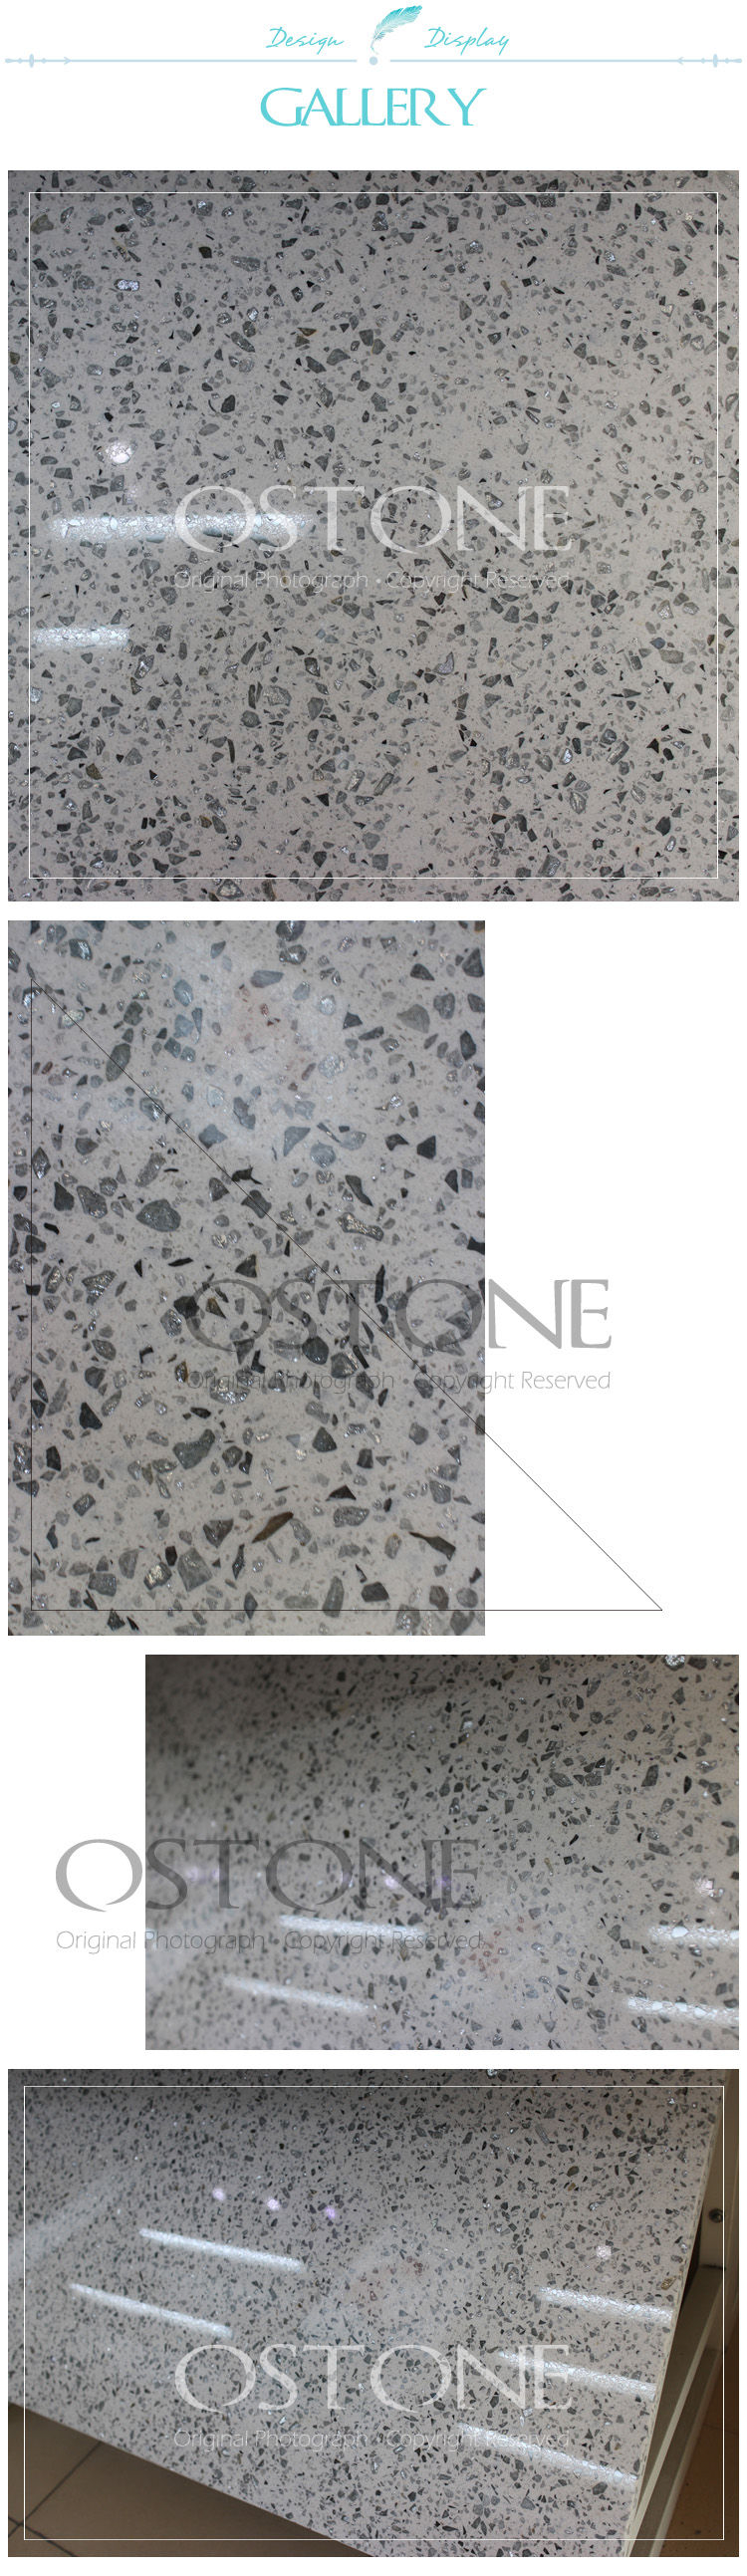 Top quality shining glitter white synthetic quartz sparkle floor top quality shining glitter white synthetic quartz sparkle floor tiles dailygadgetfo Gallery